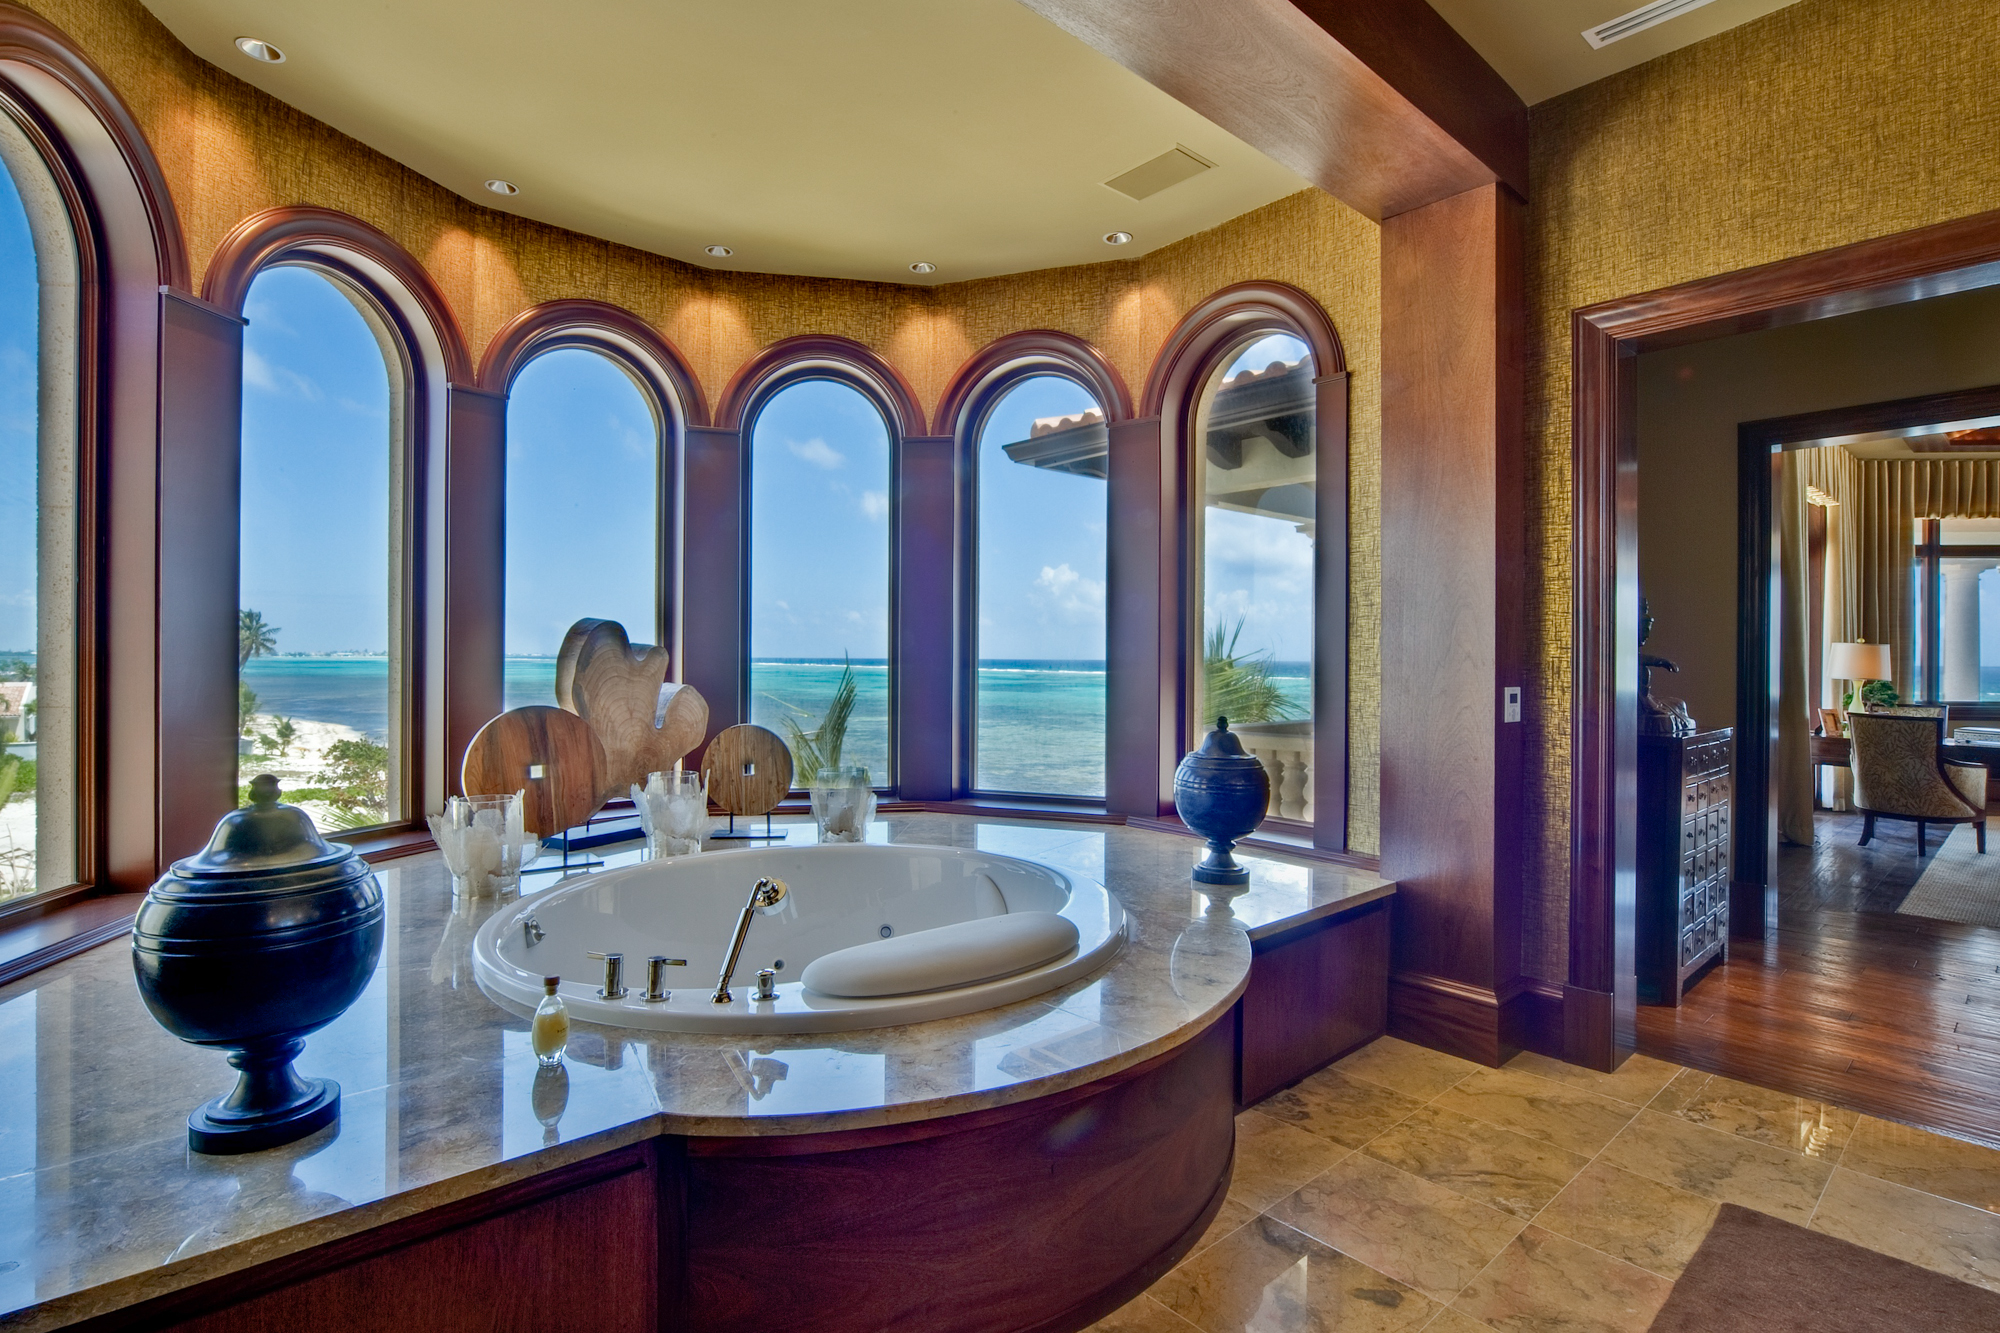 Additional photo for property listing at Castillo Caribe, Caribbean luxury real estate Castillo Caribe South Sound Rd George Town,  KY1 Cayman Islands